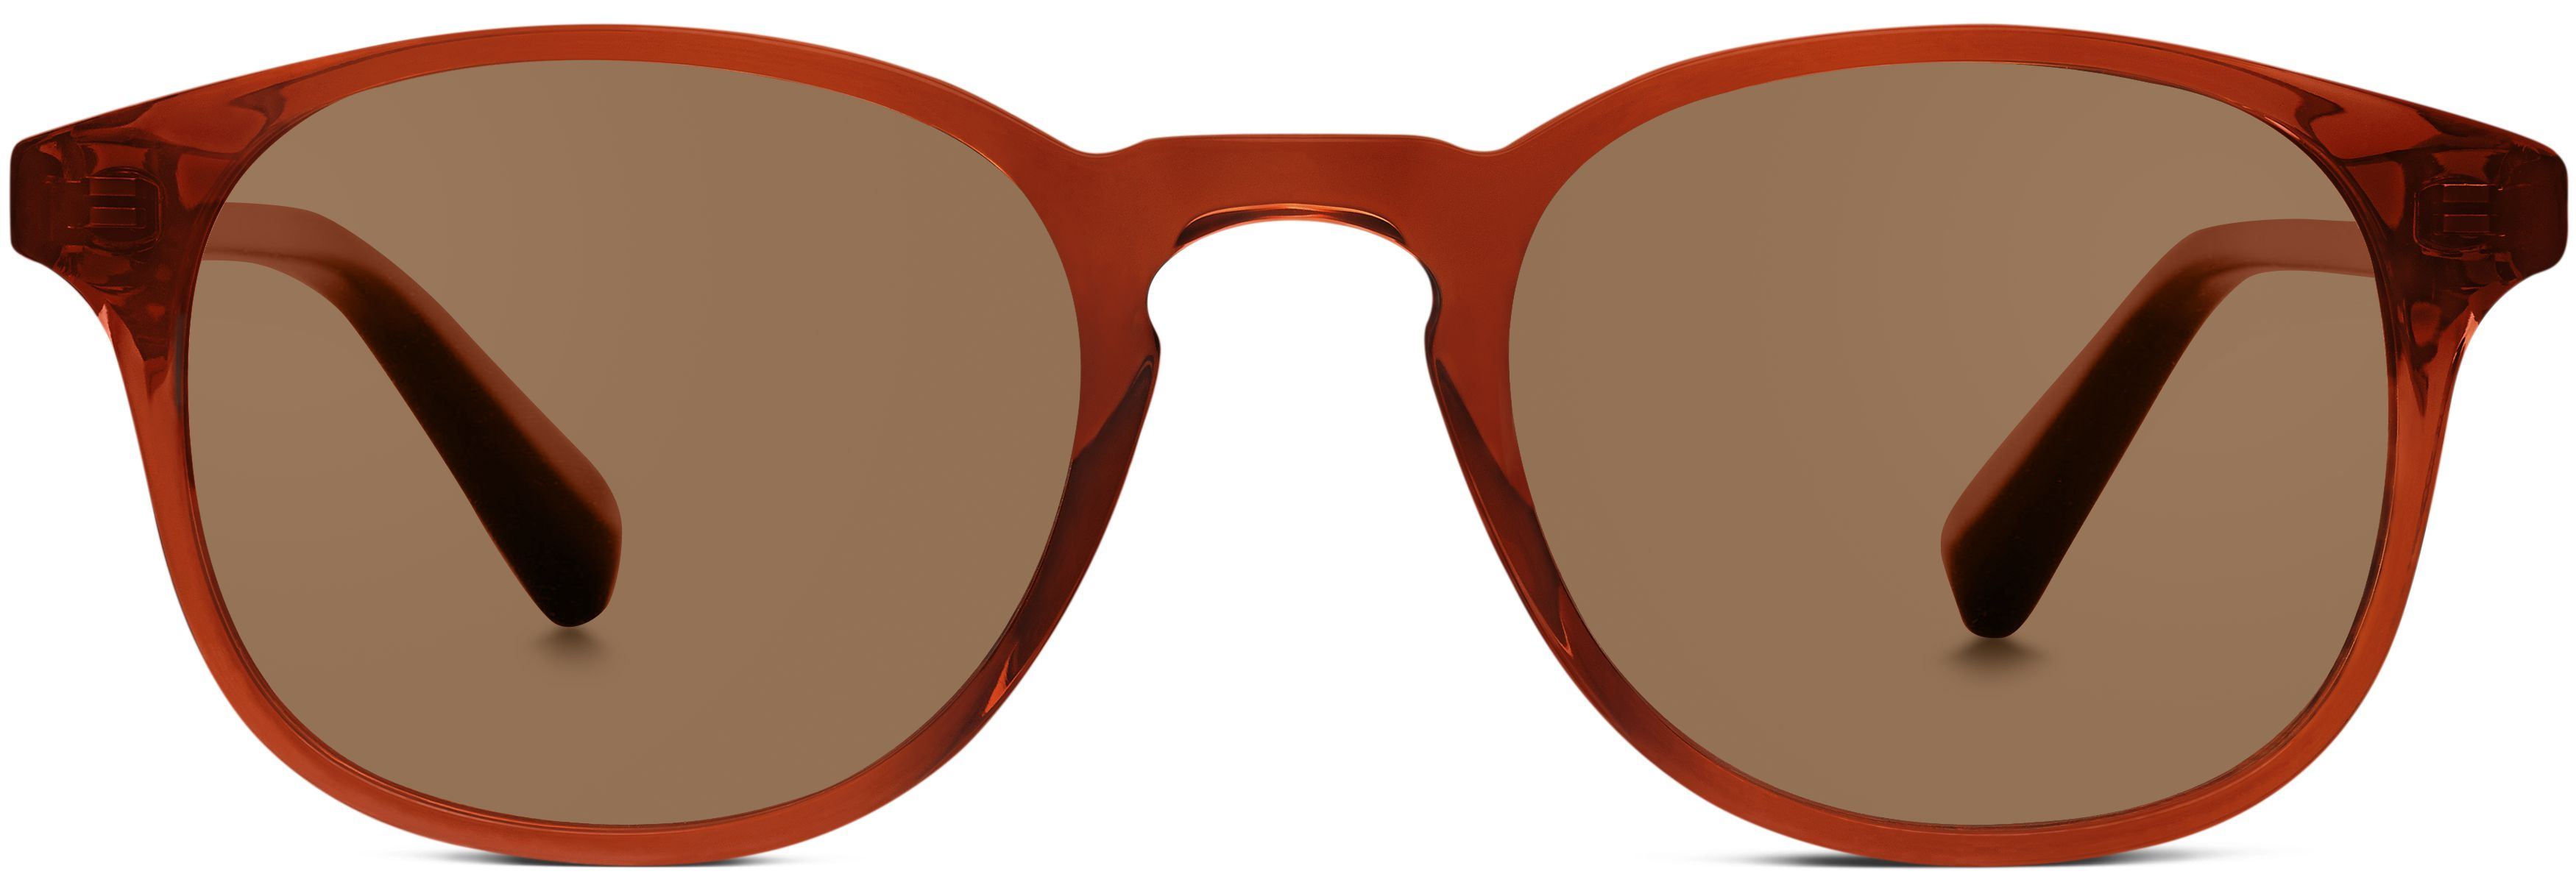 6938555bc86 Downing Sunglasses in Hickory Crystal for Men